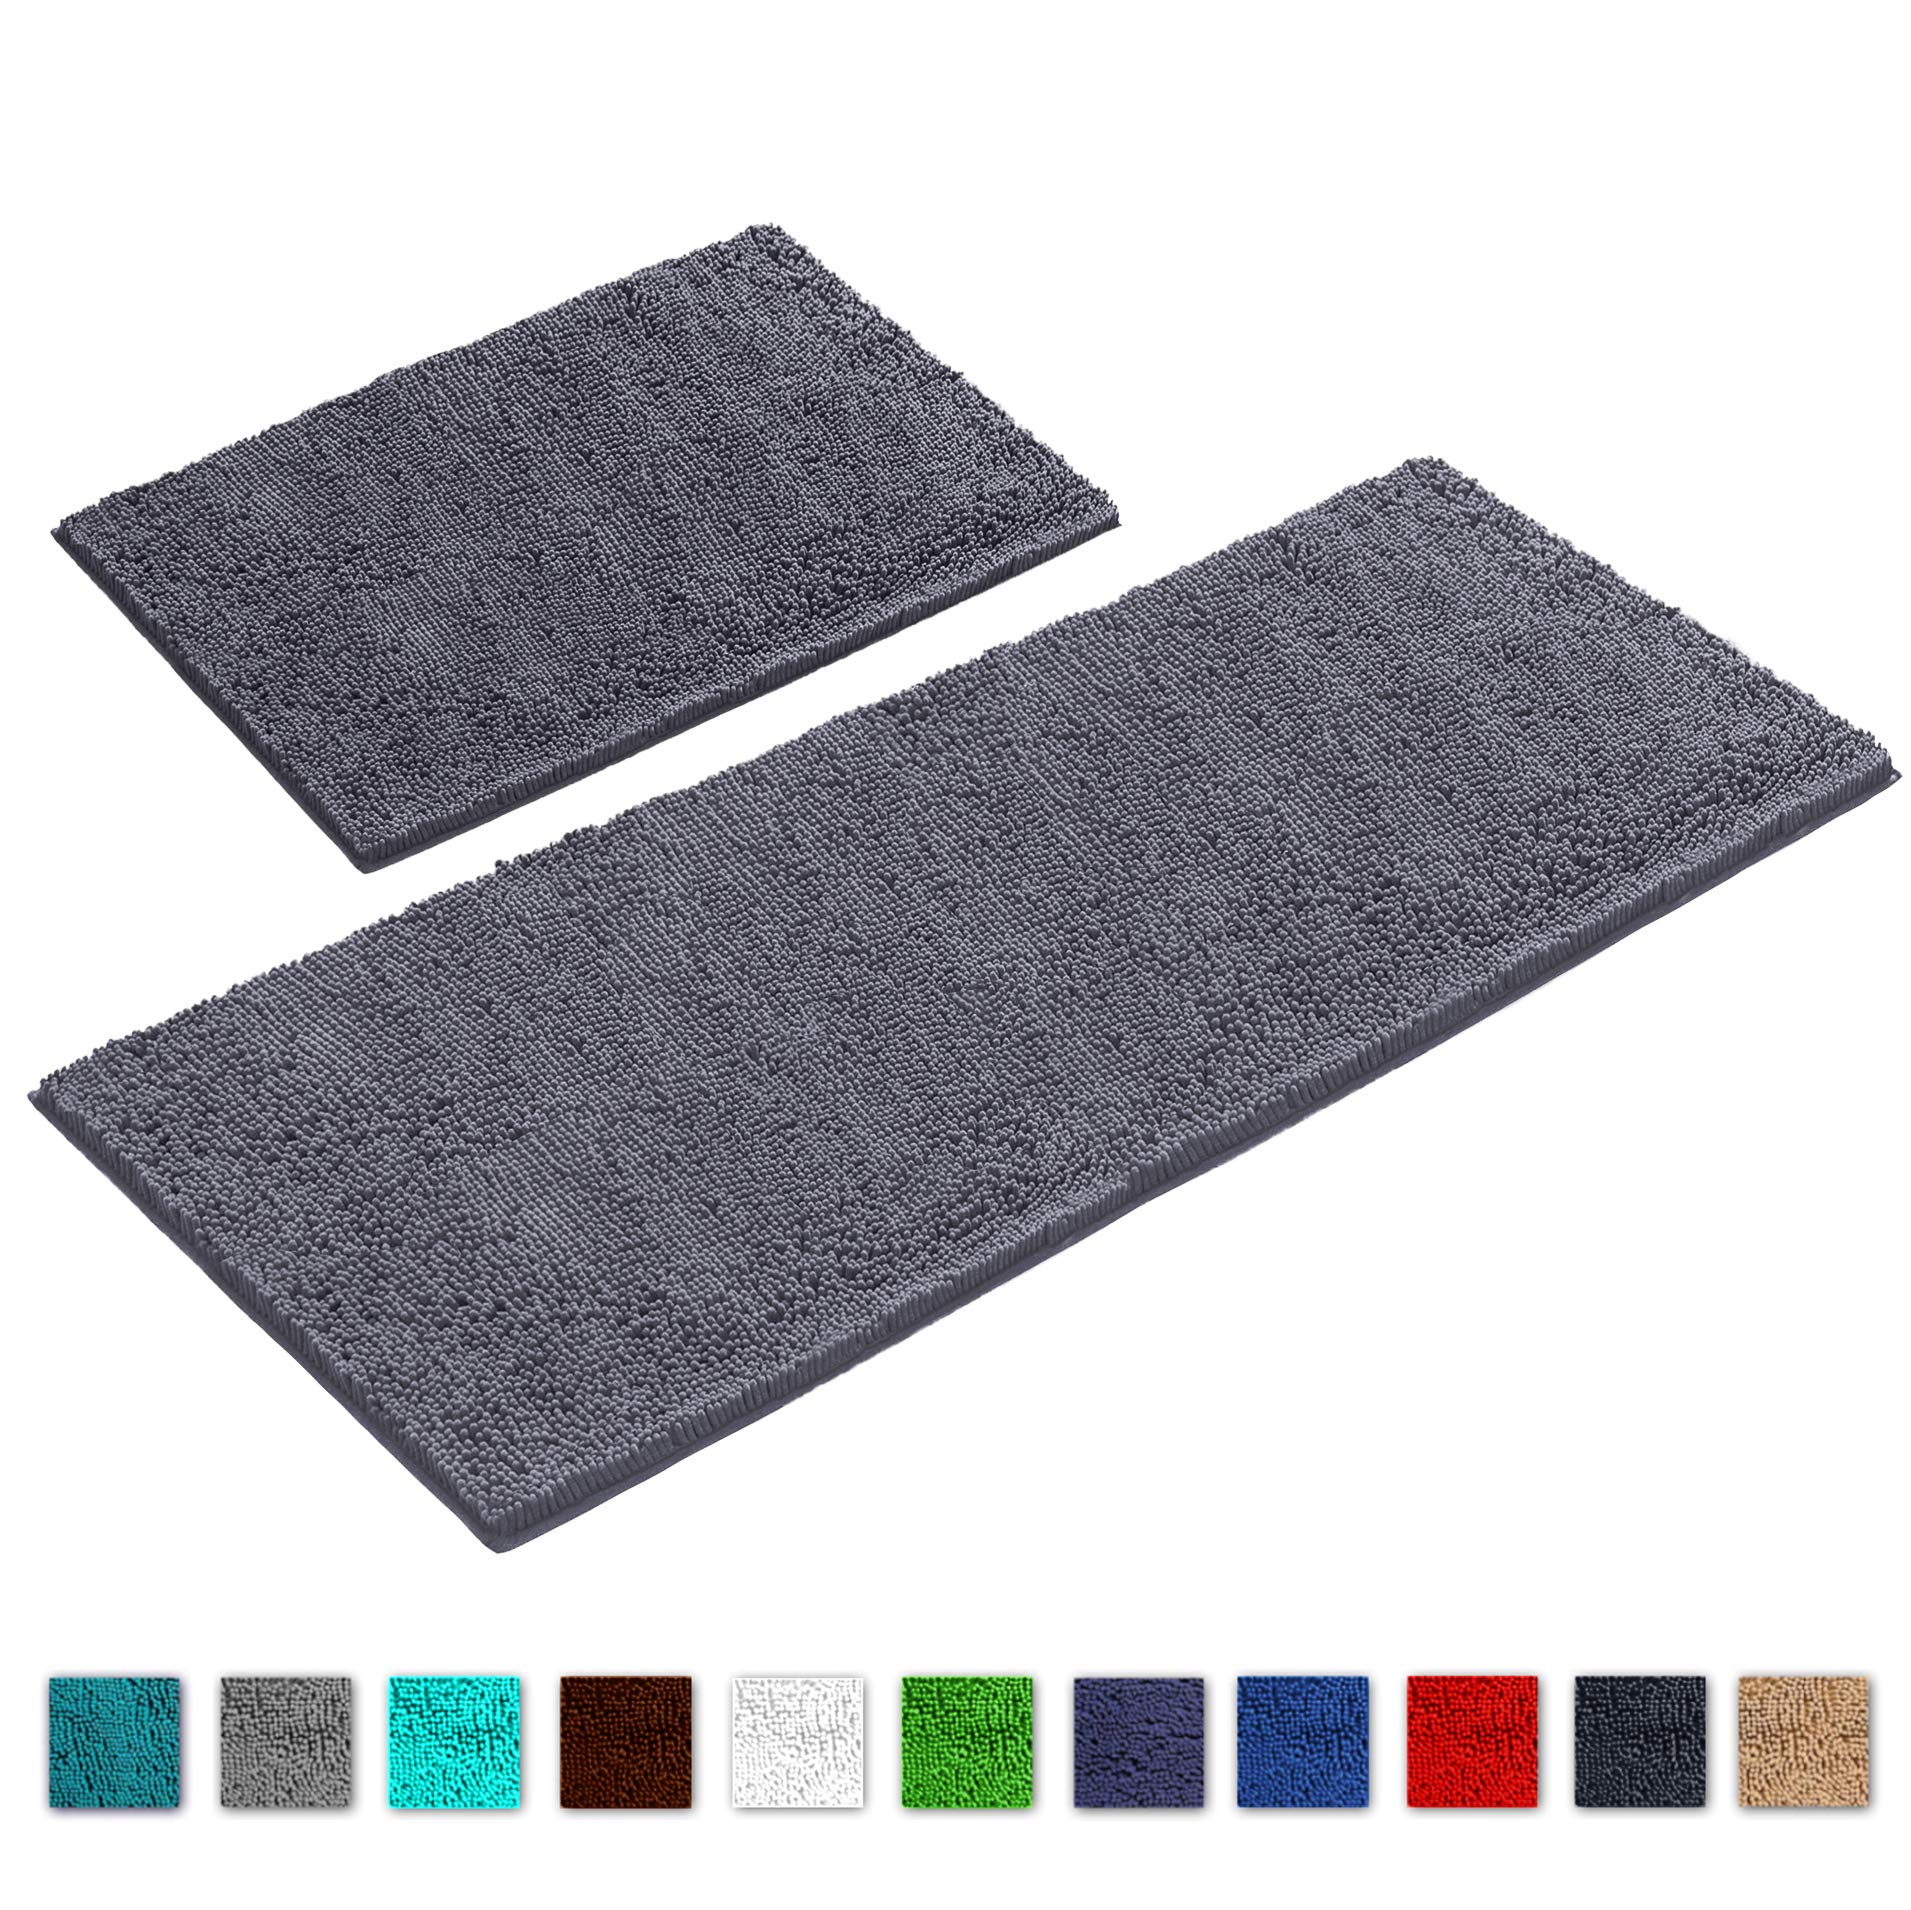 LuxUrux Bathroom Rug Mat Set-Extra-Soft Plush Bath Shower Bathroom Rug,1'' Chenille Microfiber Material, Super Absorbent. Machine Wash & Dry (Rectangular Runner Set, Dark Gray)